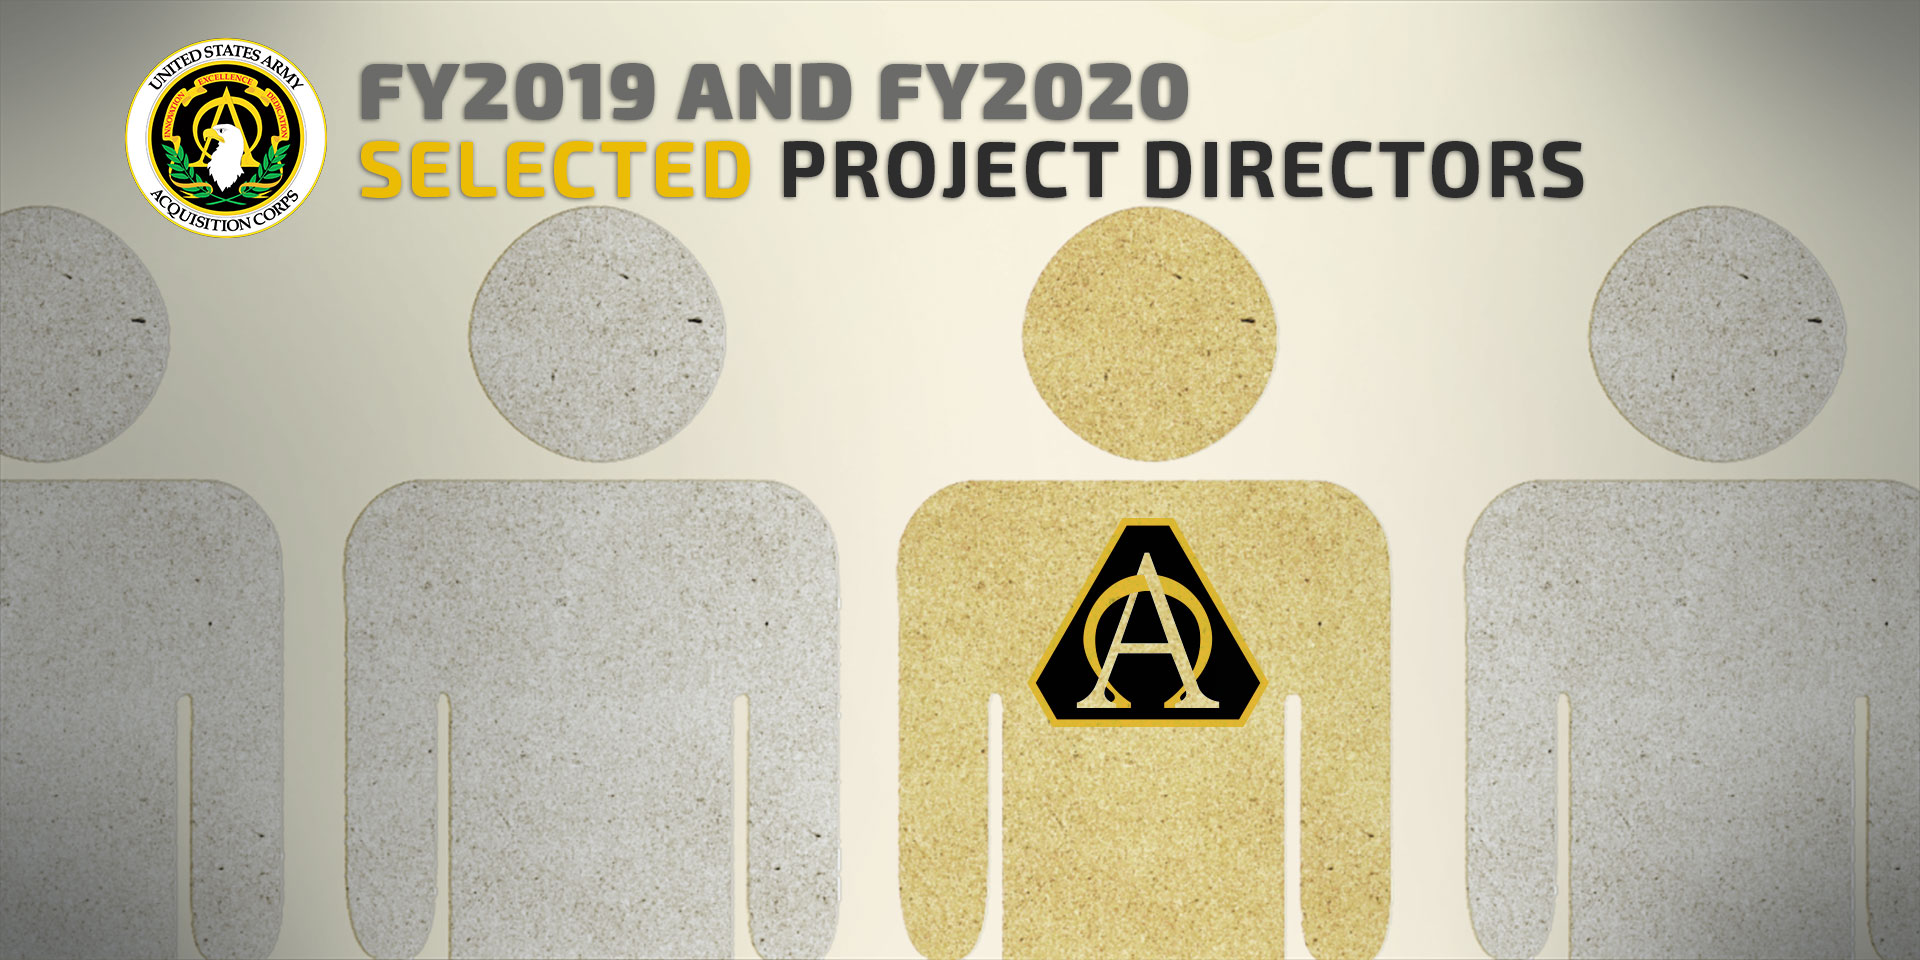 Project Directors for Fiscal Years 2019 and 2020